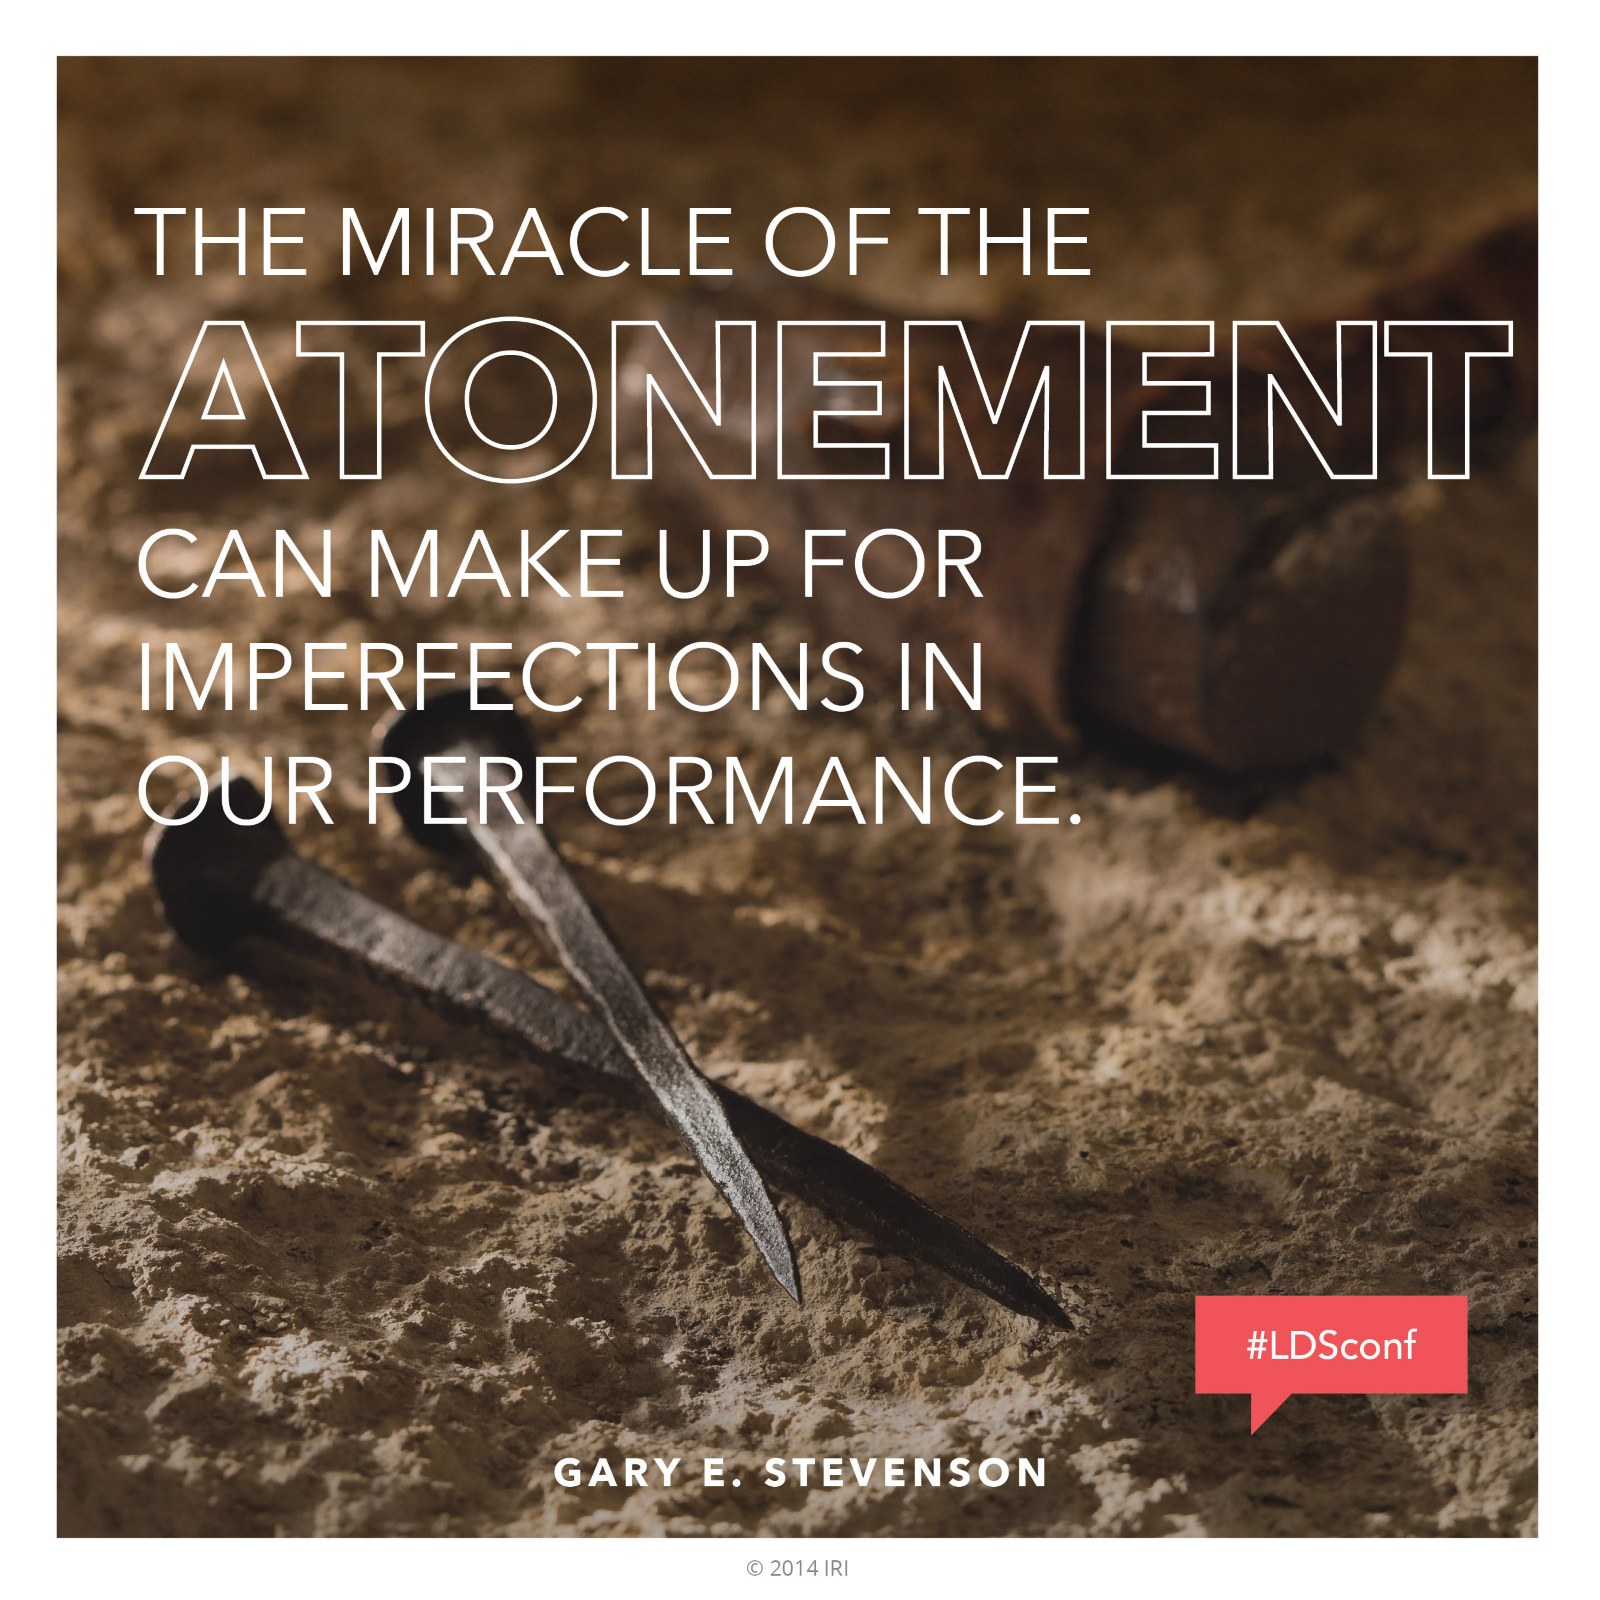 the miracle of the atonement